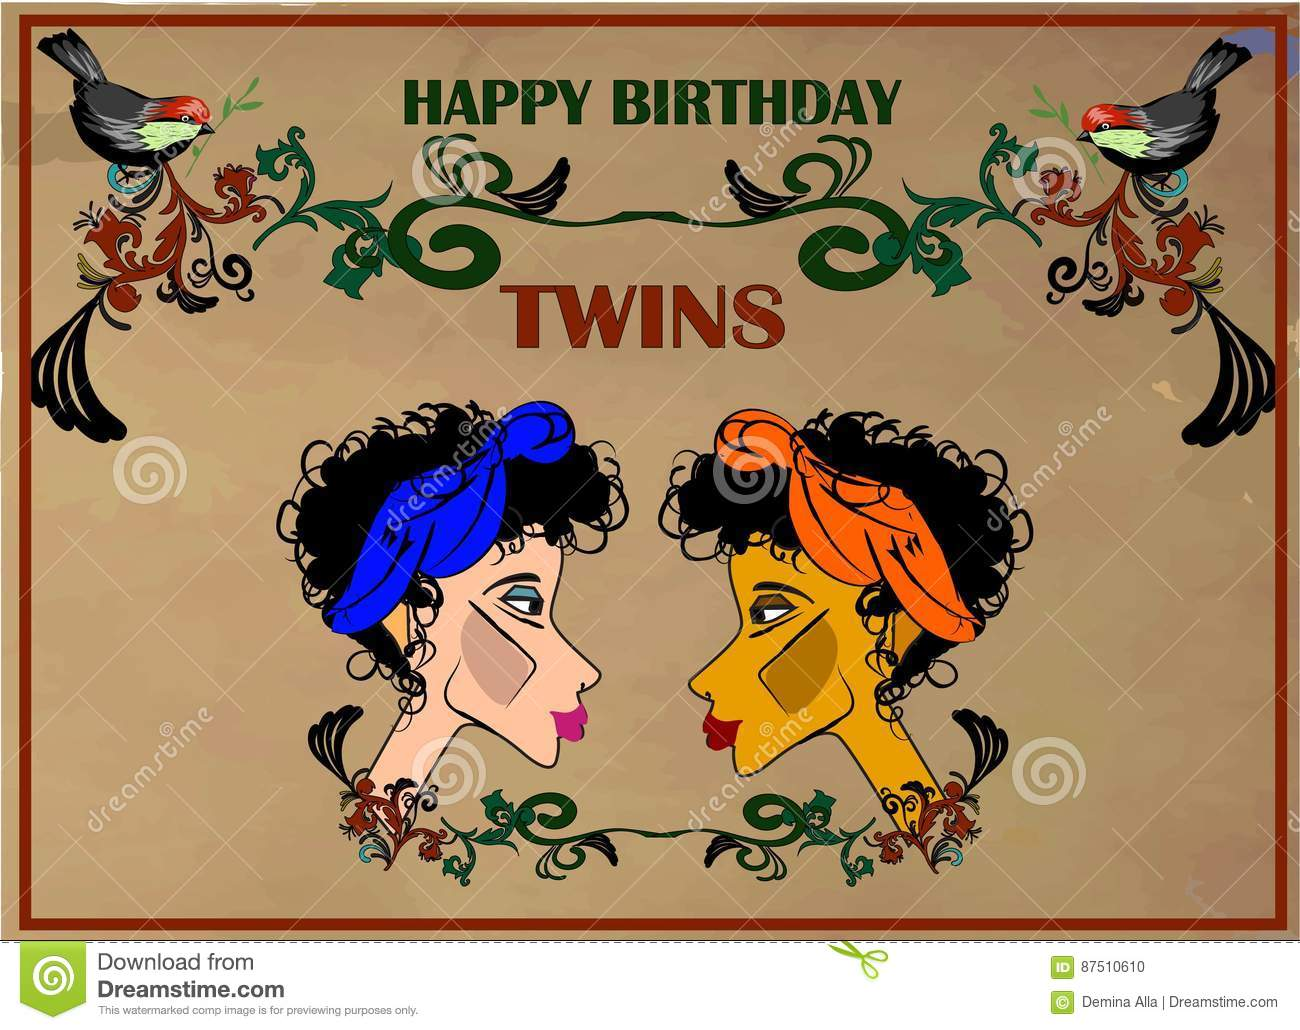 Happy birthday greeting card for twins stock vector illustration happy birthday greeting card for twins kristyandbryce Gallery